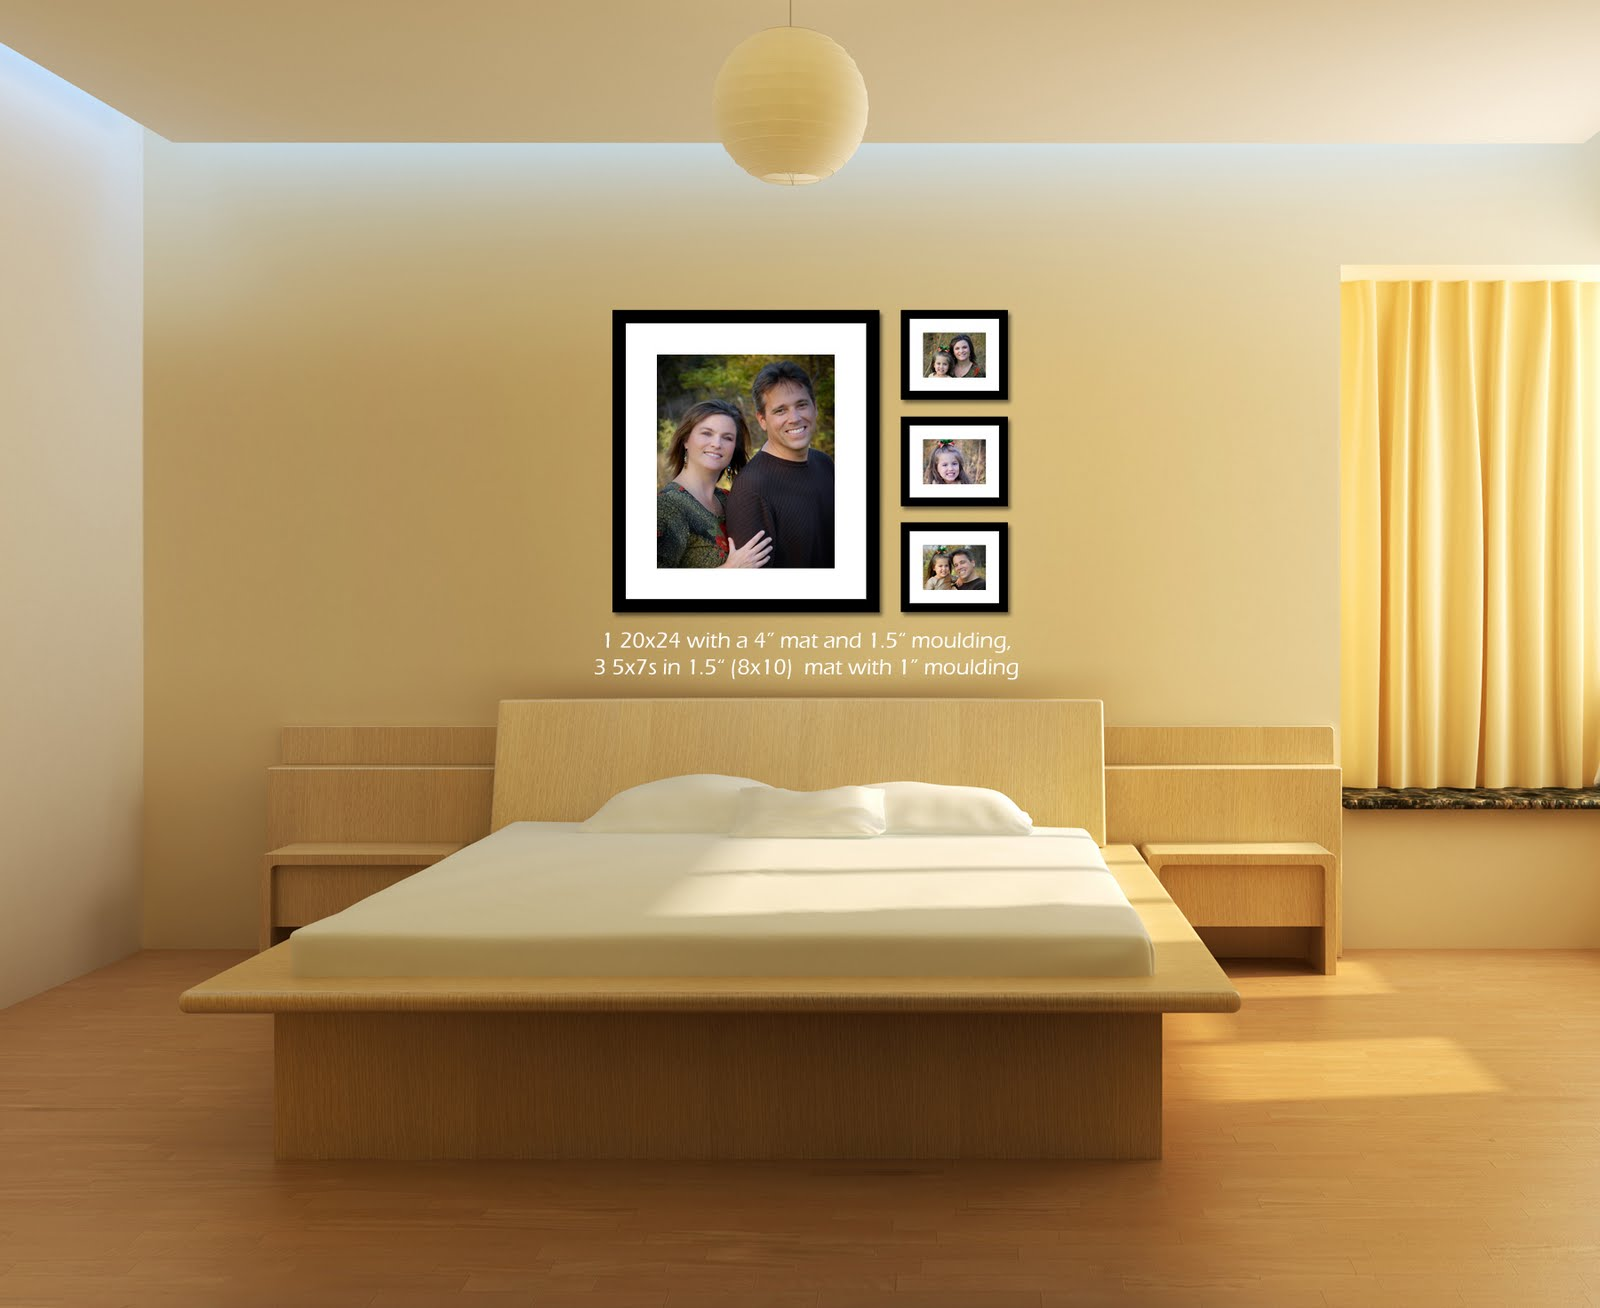 pictures for bedroom walls photo - 1